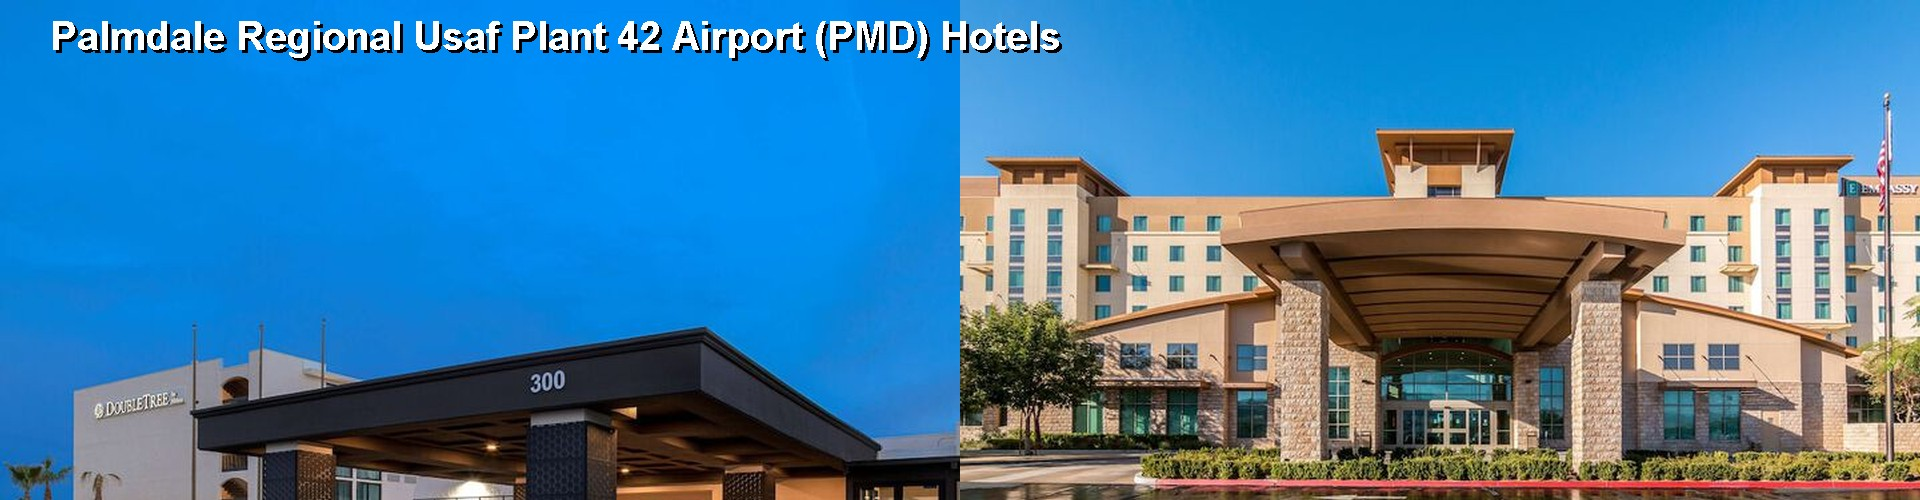 5 Best Hotels near Palmdale Regional Usaf Plant 42 Airport (PMD)